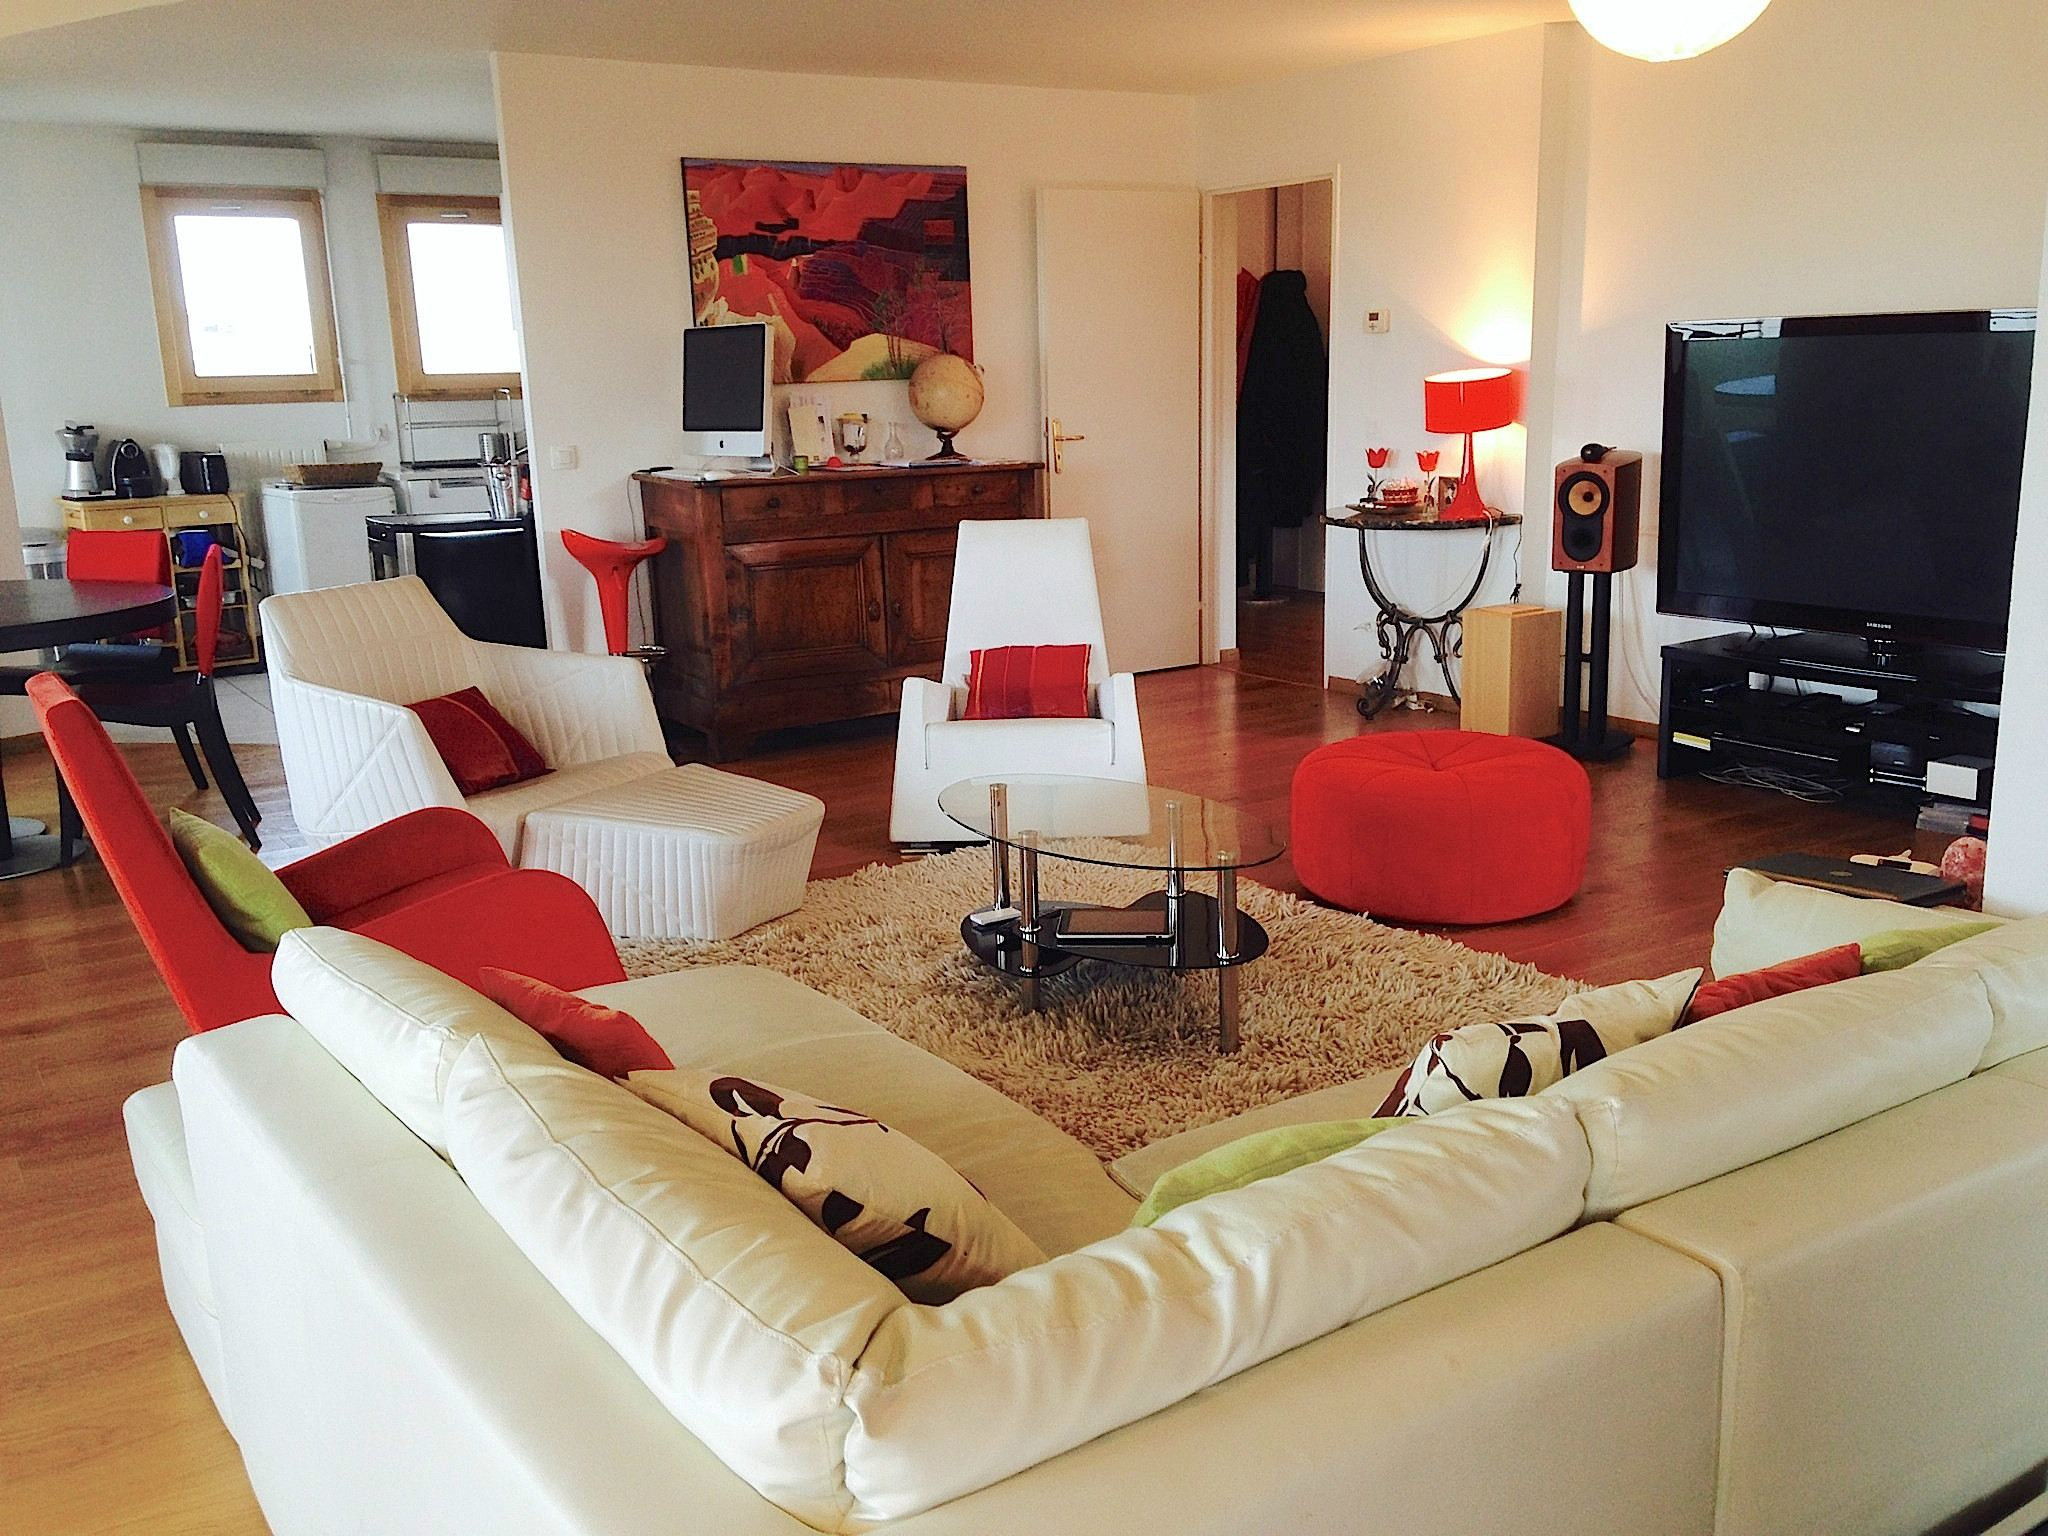 Apartment for Sale at THONON LES BAINS CENTER : FLAT in top floor Thonon Les Bains, Haute Savoie 74200 France